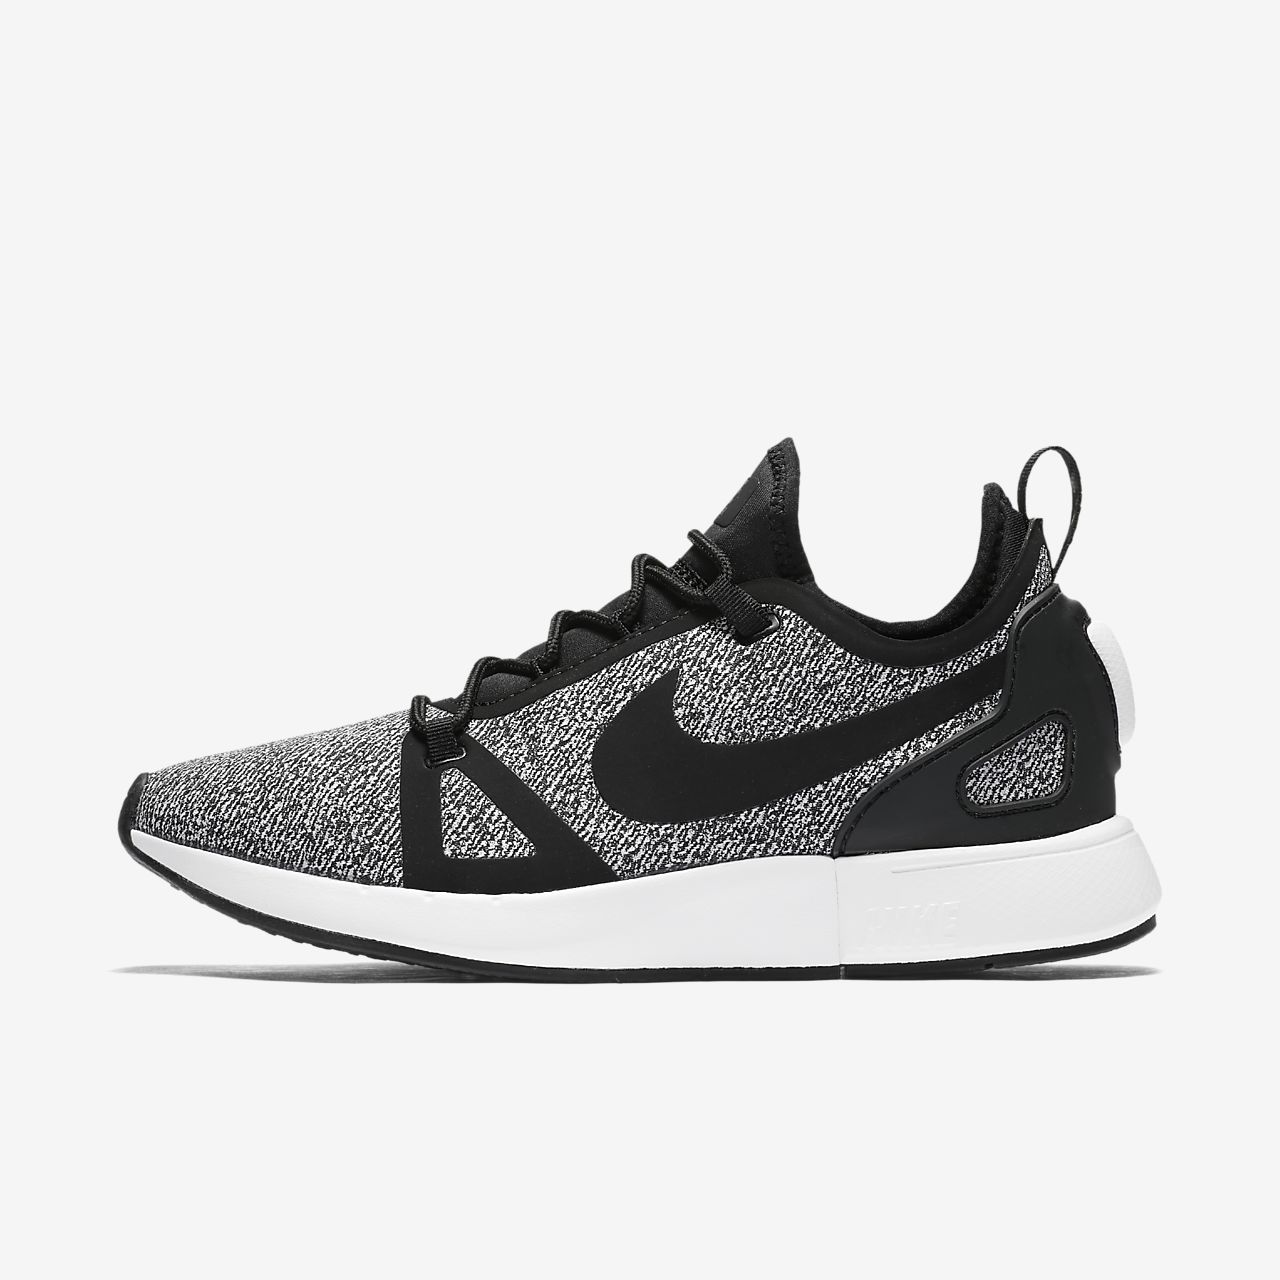 WMNS NIKE DUEL RACER WHITE CASUAL SHOES WOMEN'S SELECT YOUR SIZE